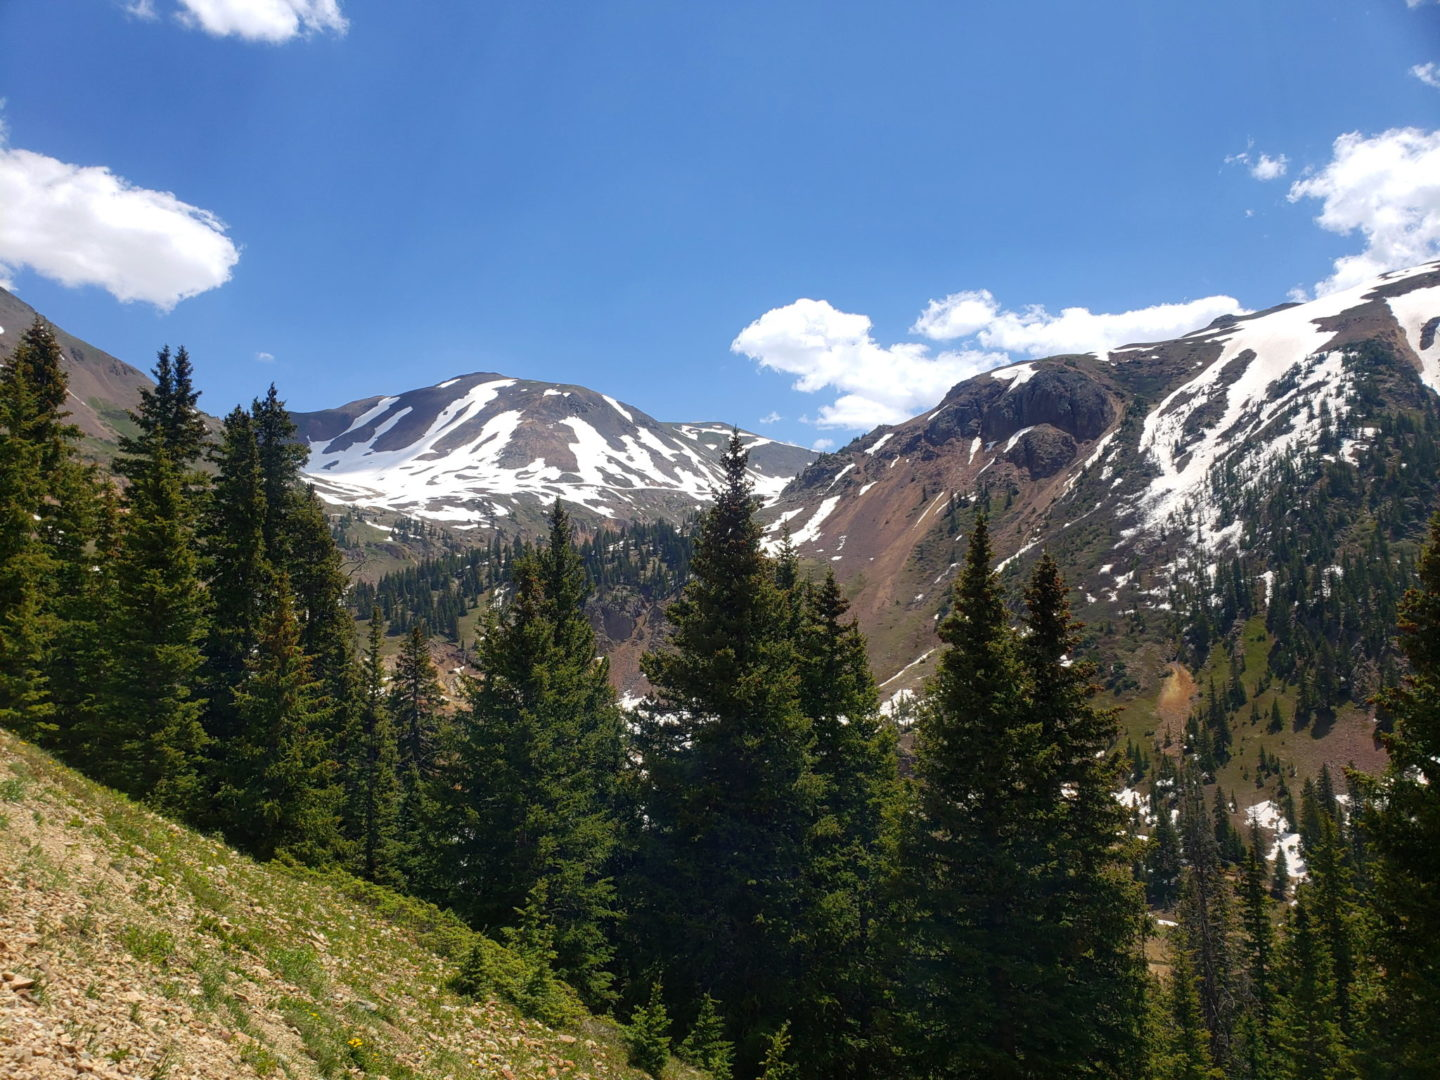 View from SH110 above Silverton